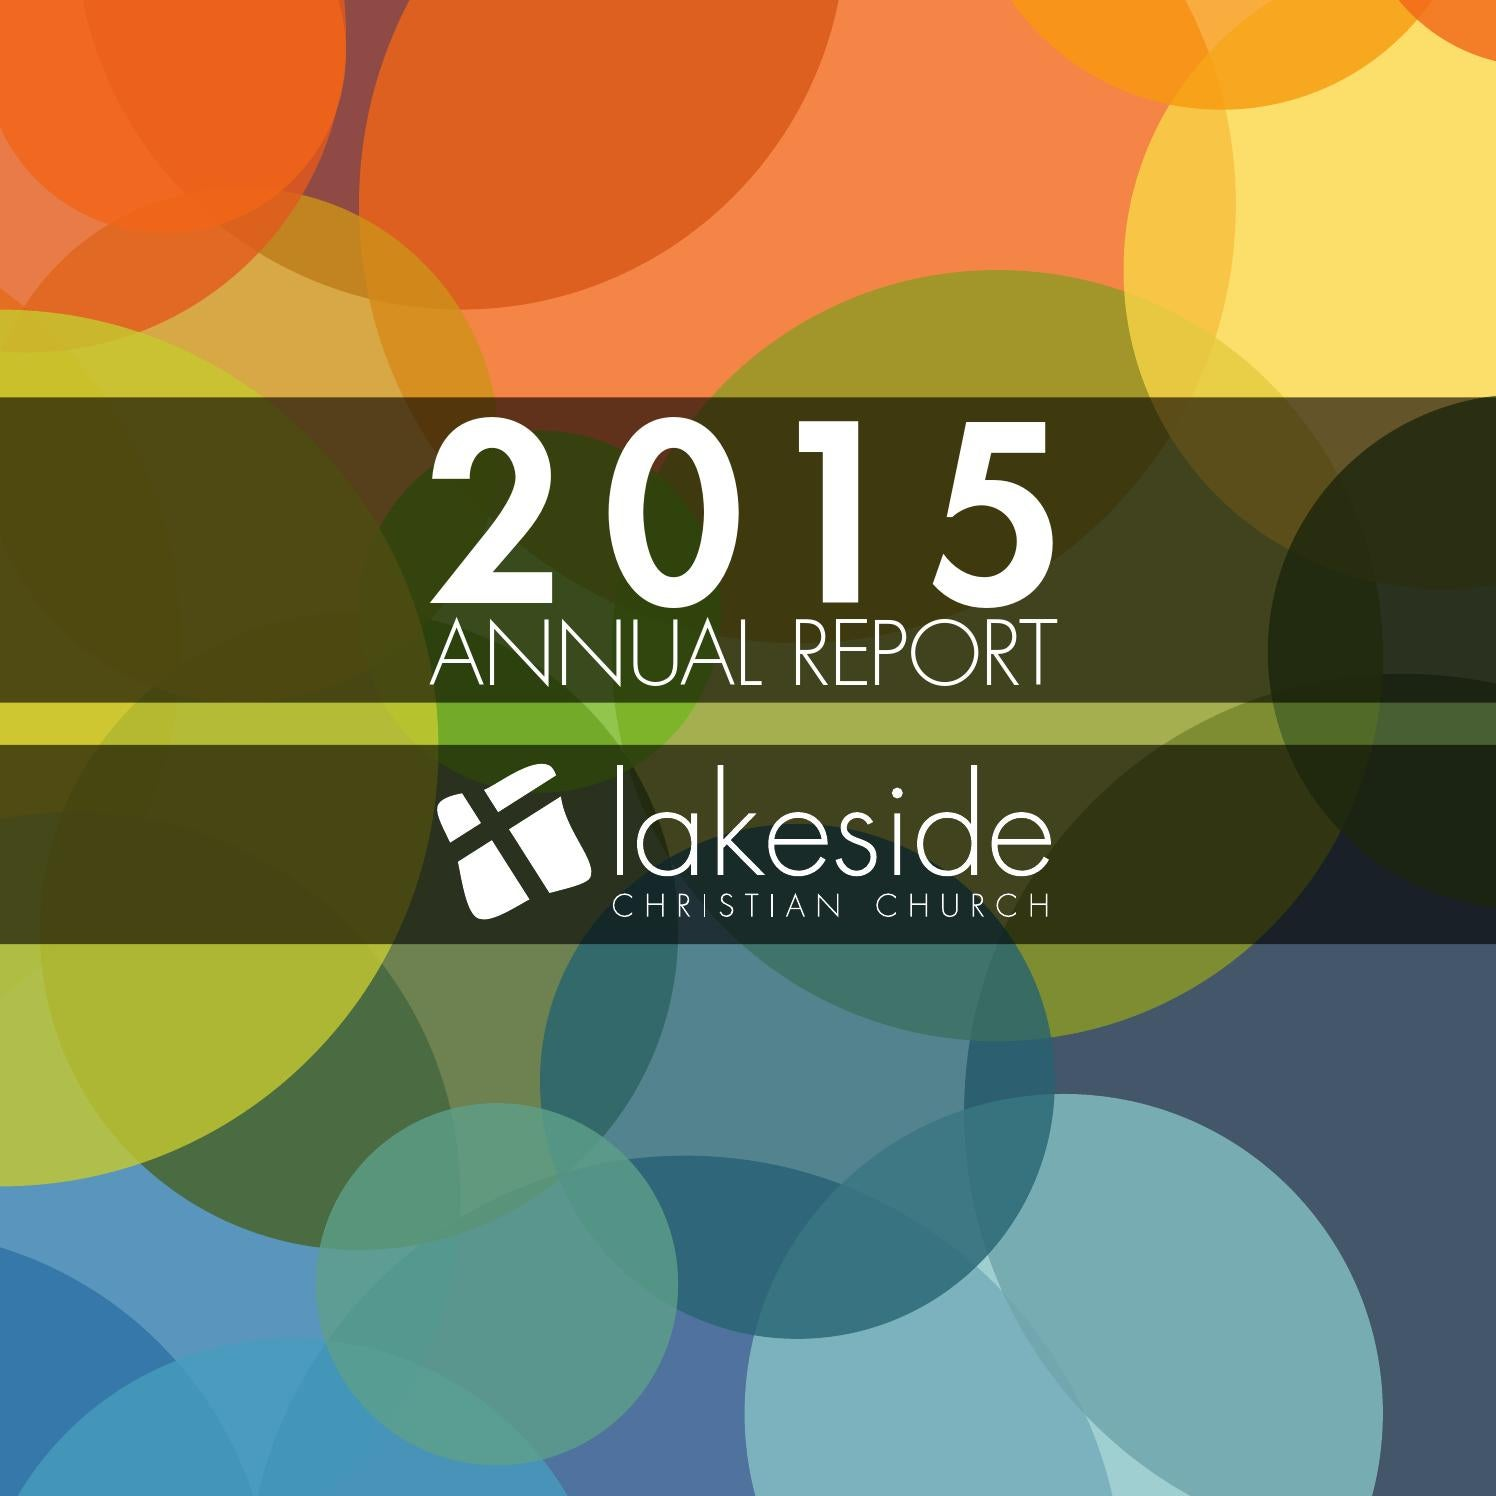 lakeside christian church annual report 2015 by lakeside